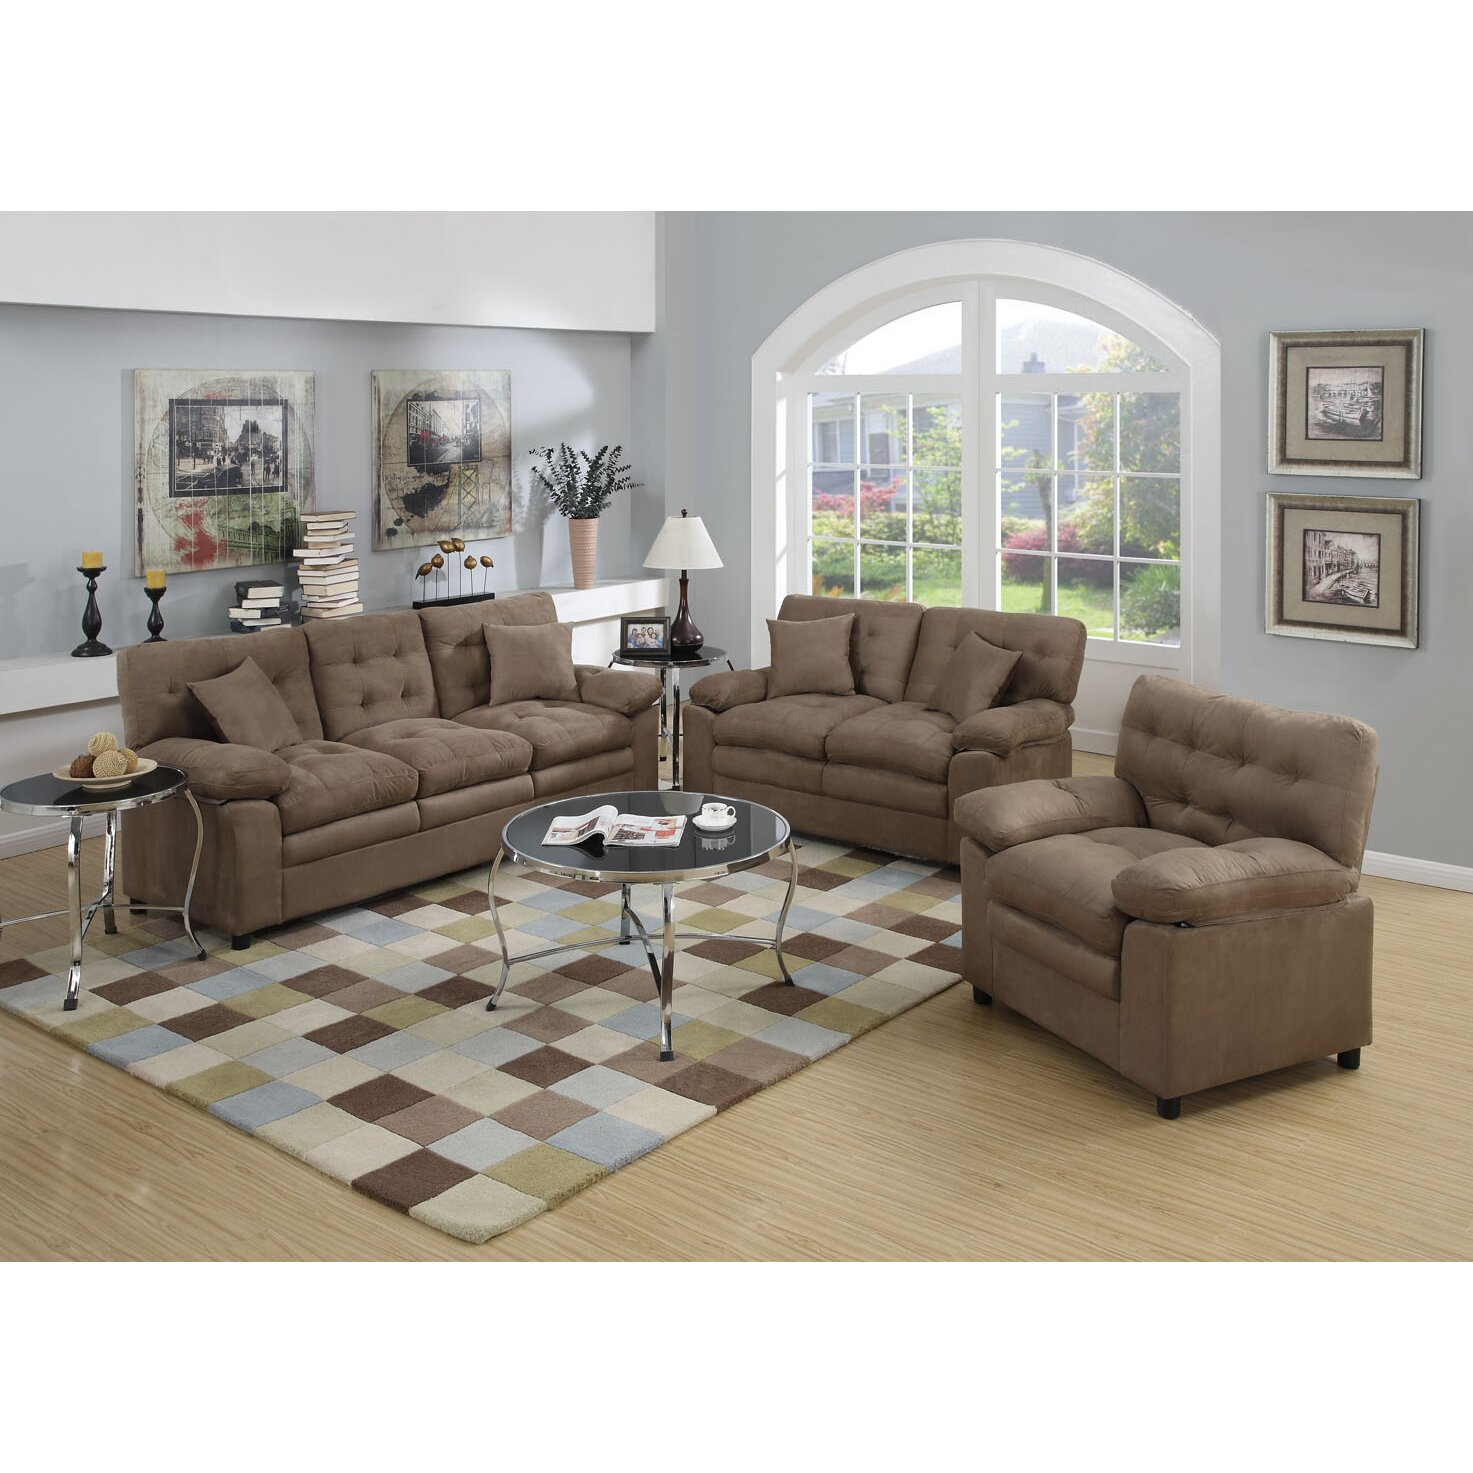 Poundex bobkona colona 3 piece living room set reviews for Upholstery living room furniture